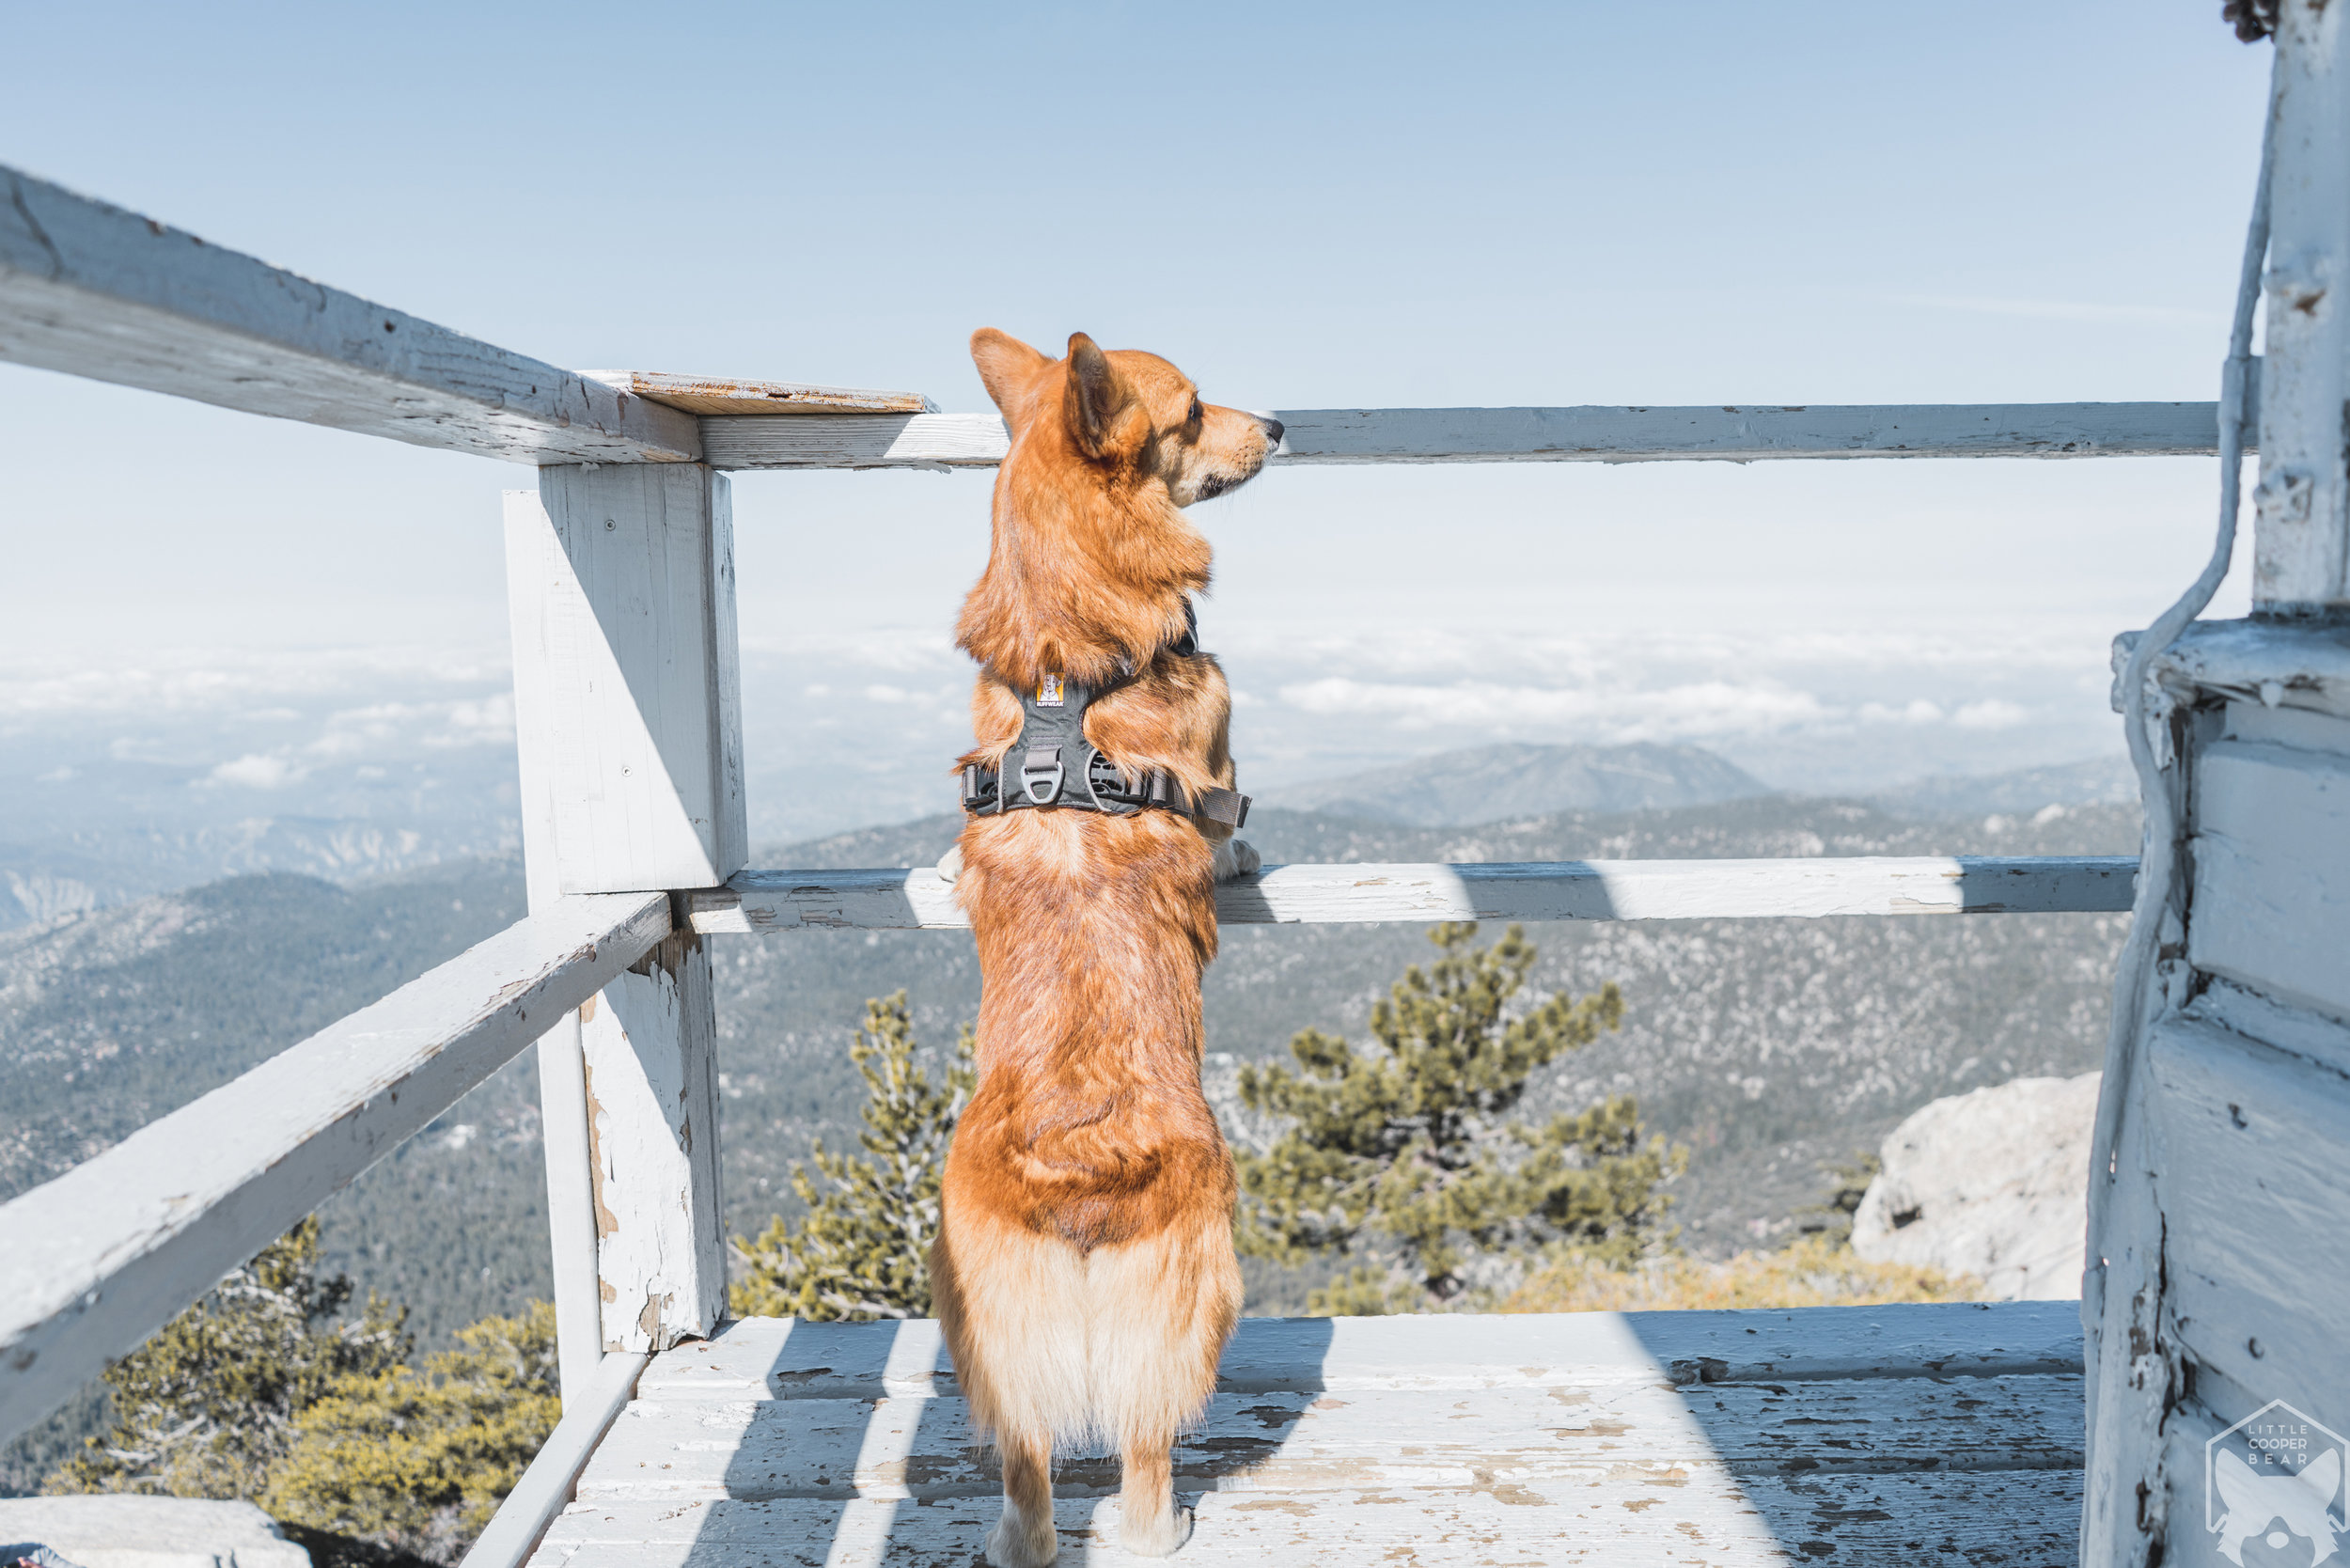 Keeping a good lookout!